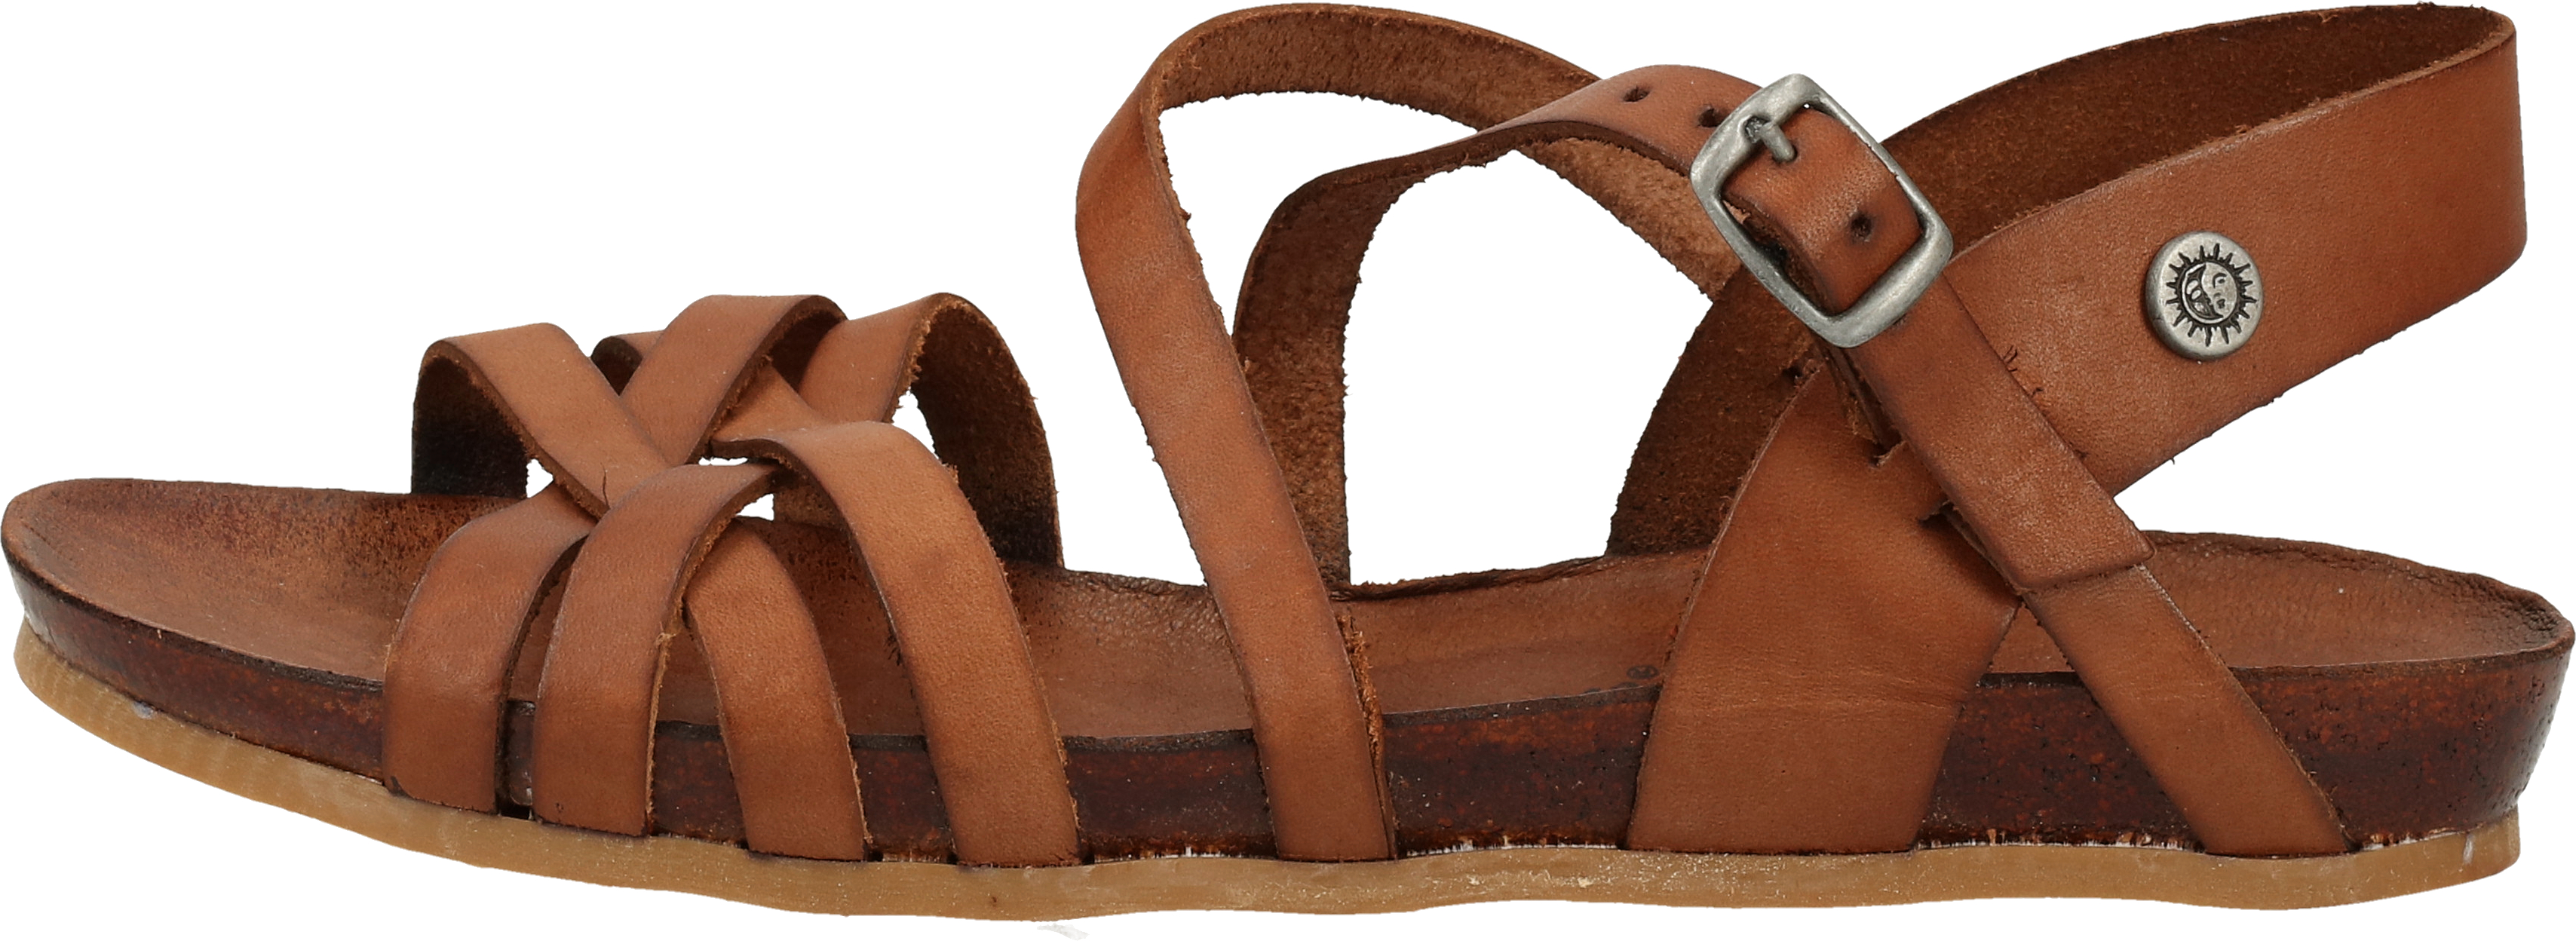 Cosmos Comfort Sandals Leather brown